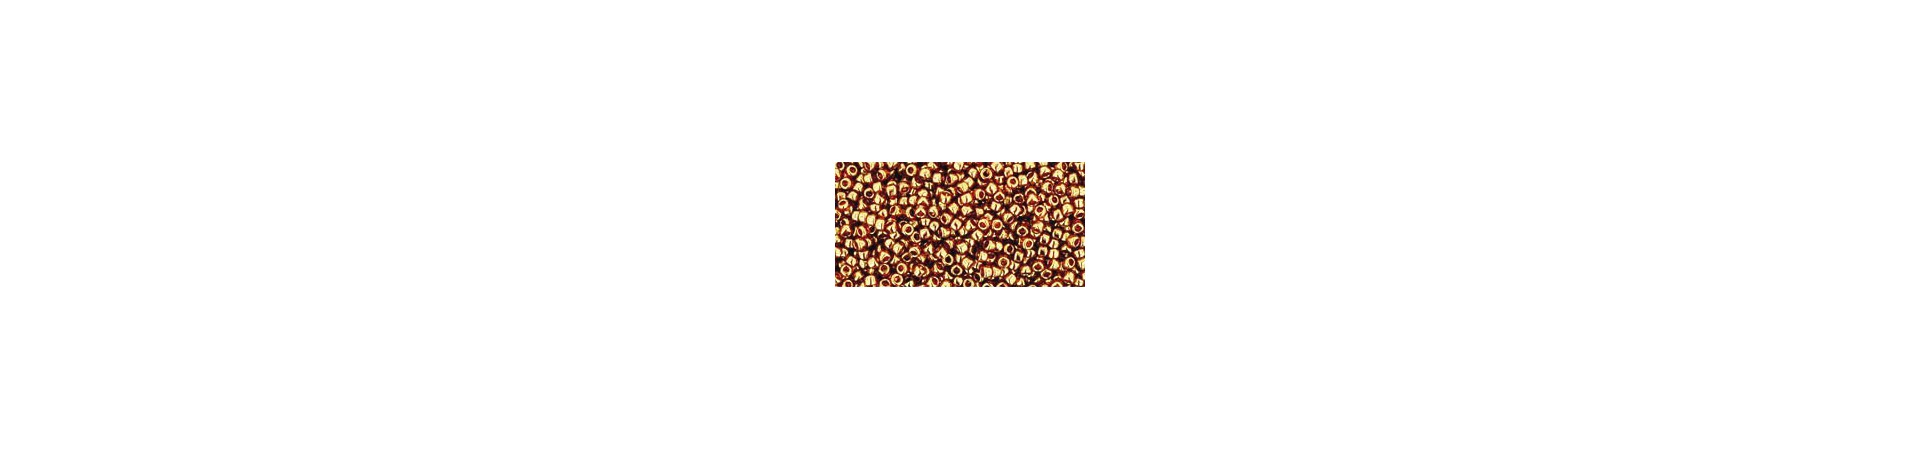 Round seed beads 15/0 (1.5mm)